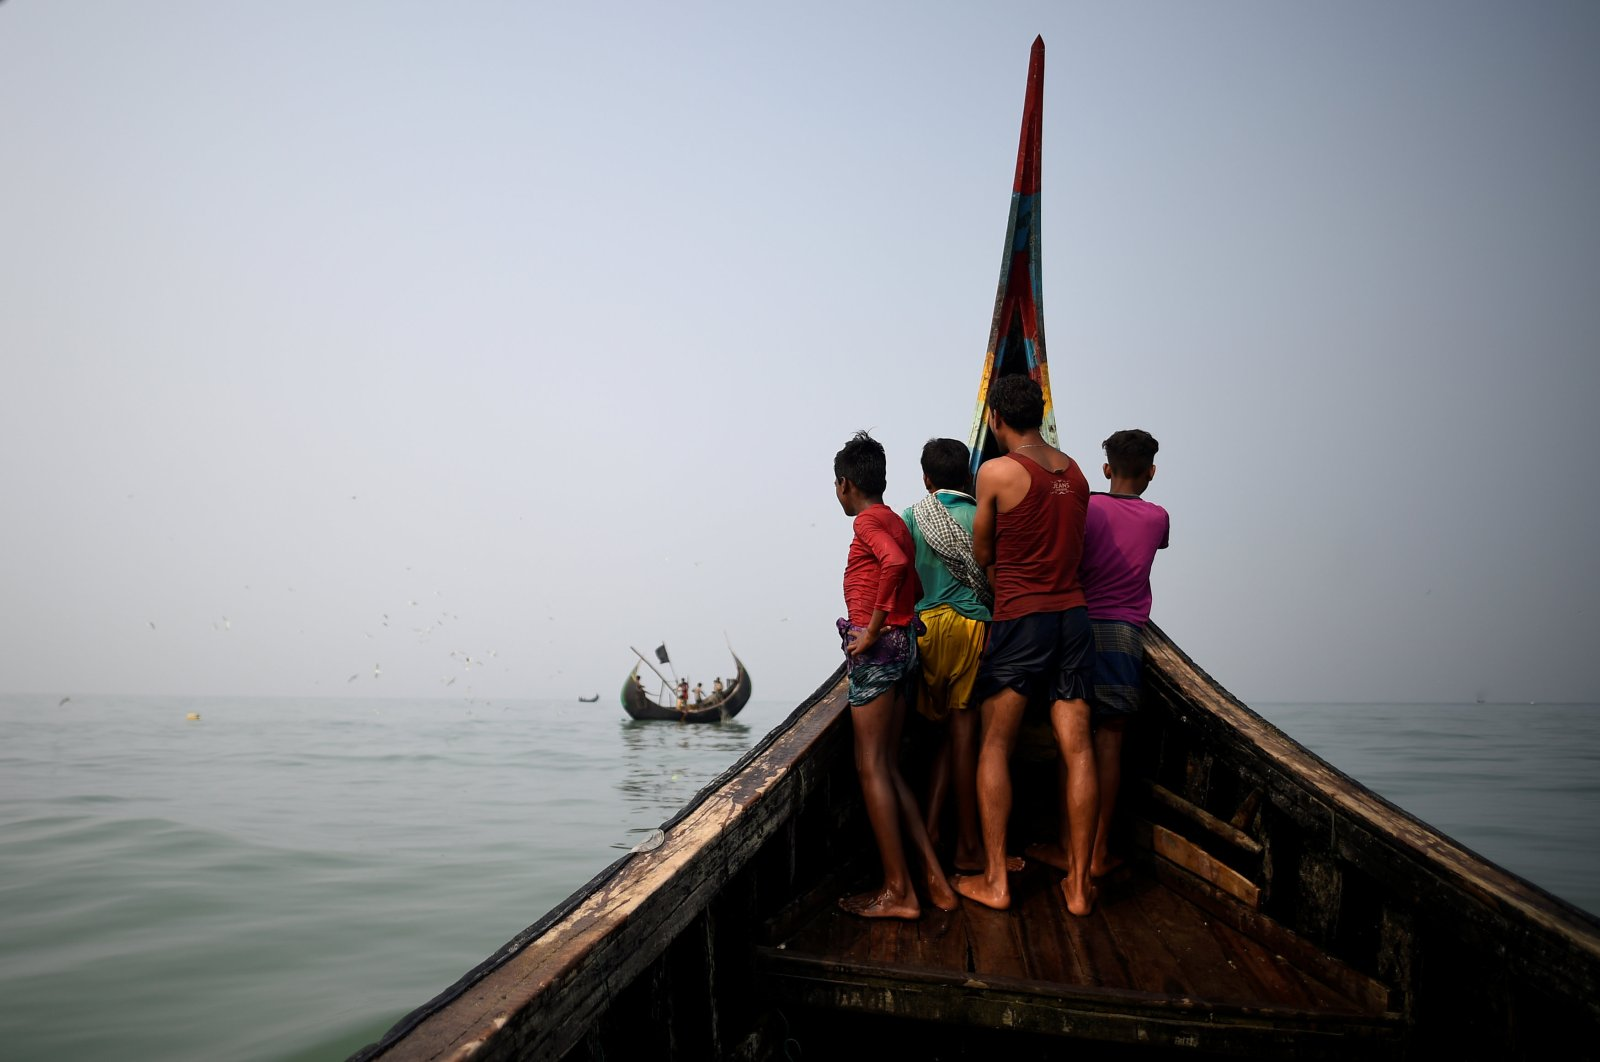 Rohingya refugees crew a fishing boat in the Bay of Bengal near Cox's Bazaar, Bangladesh, March 24, 2018. (Reuters Photo)